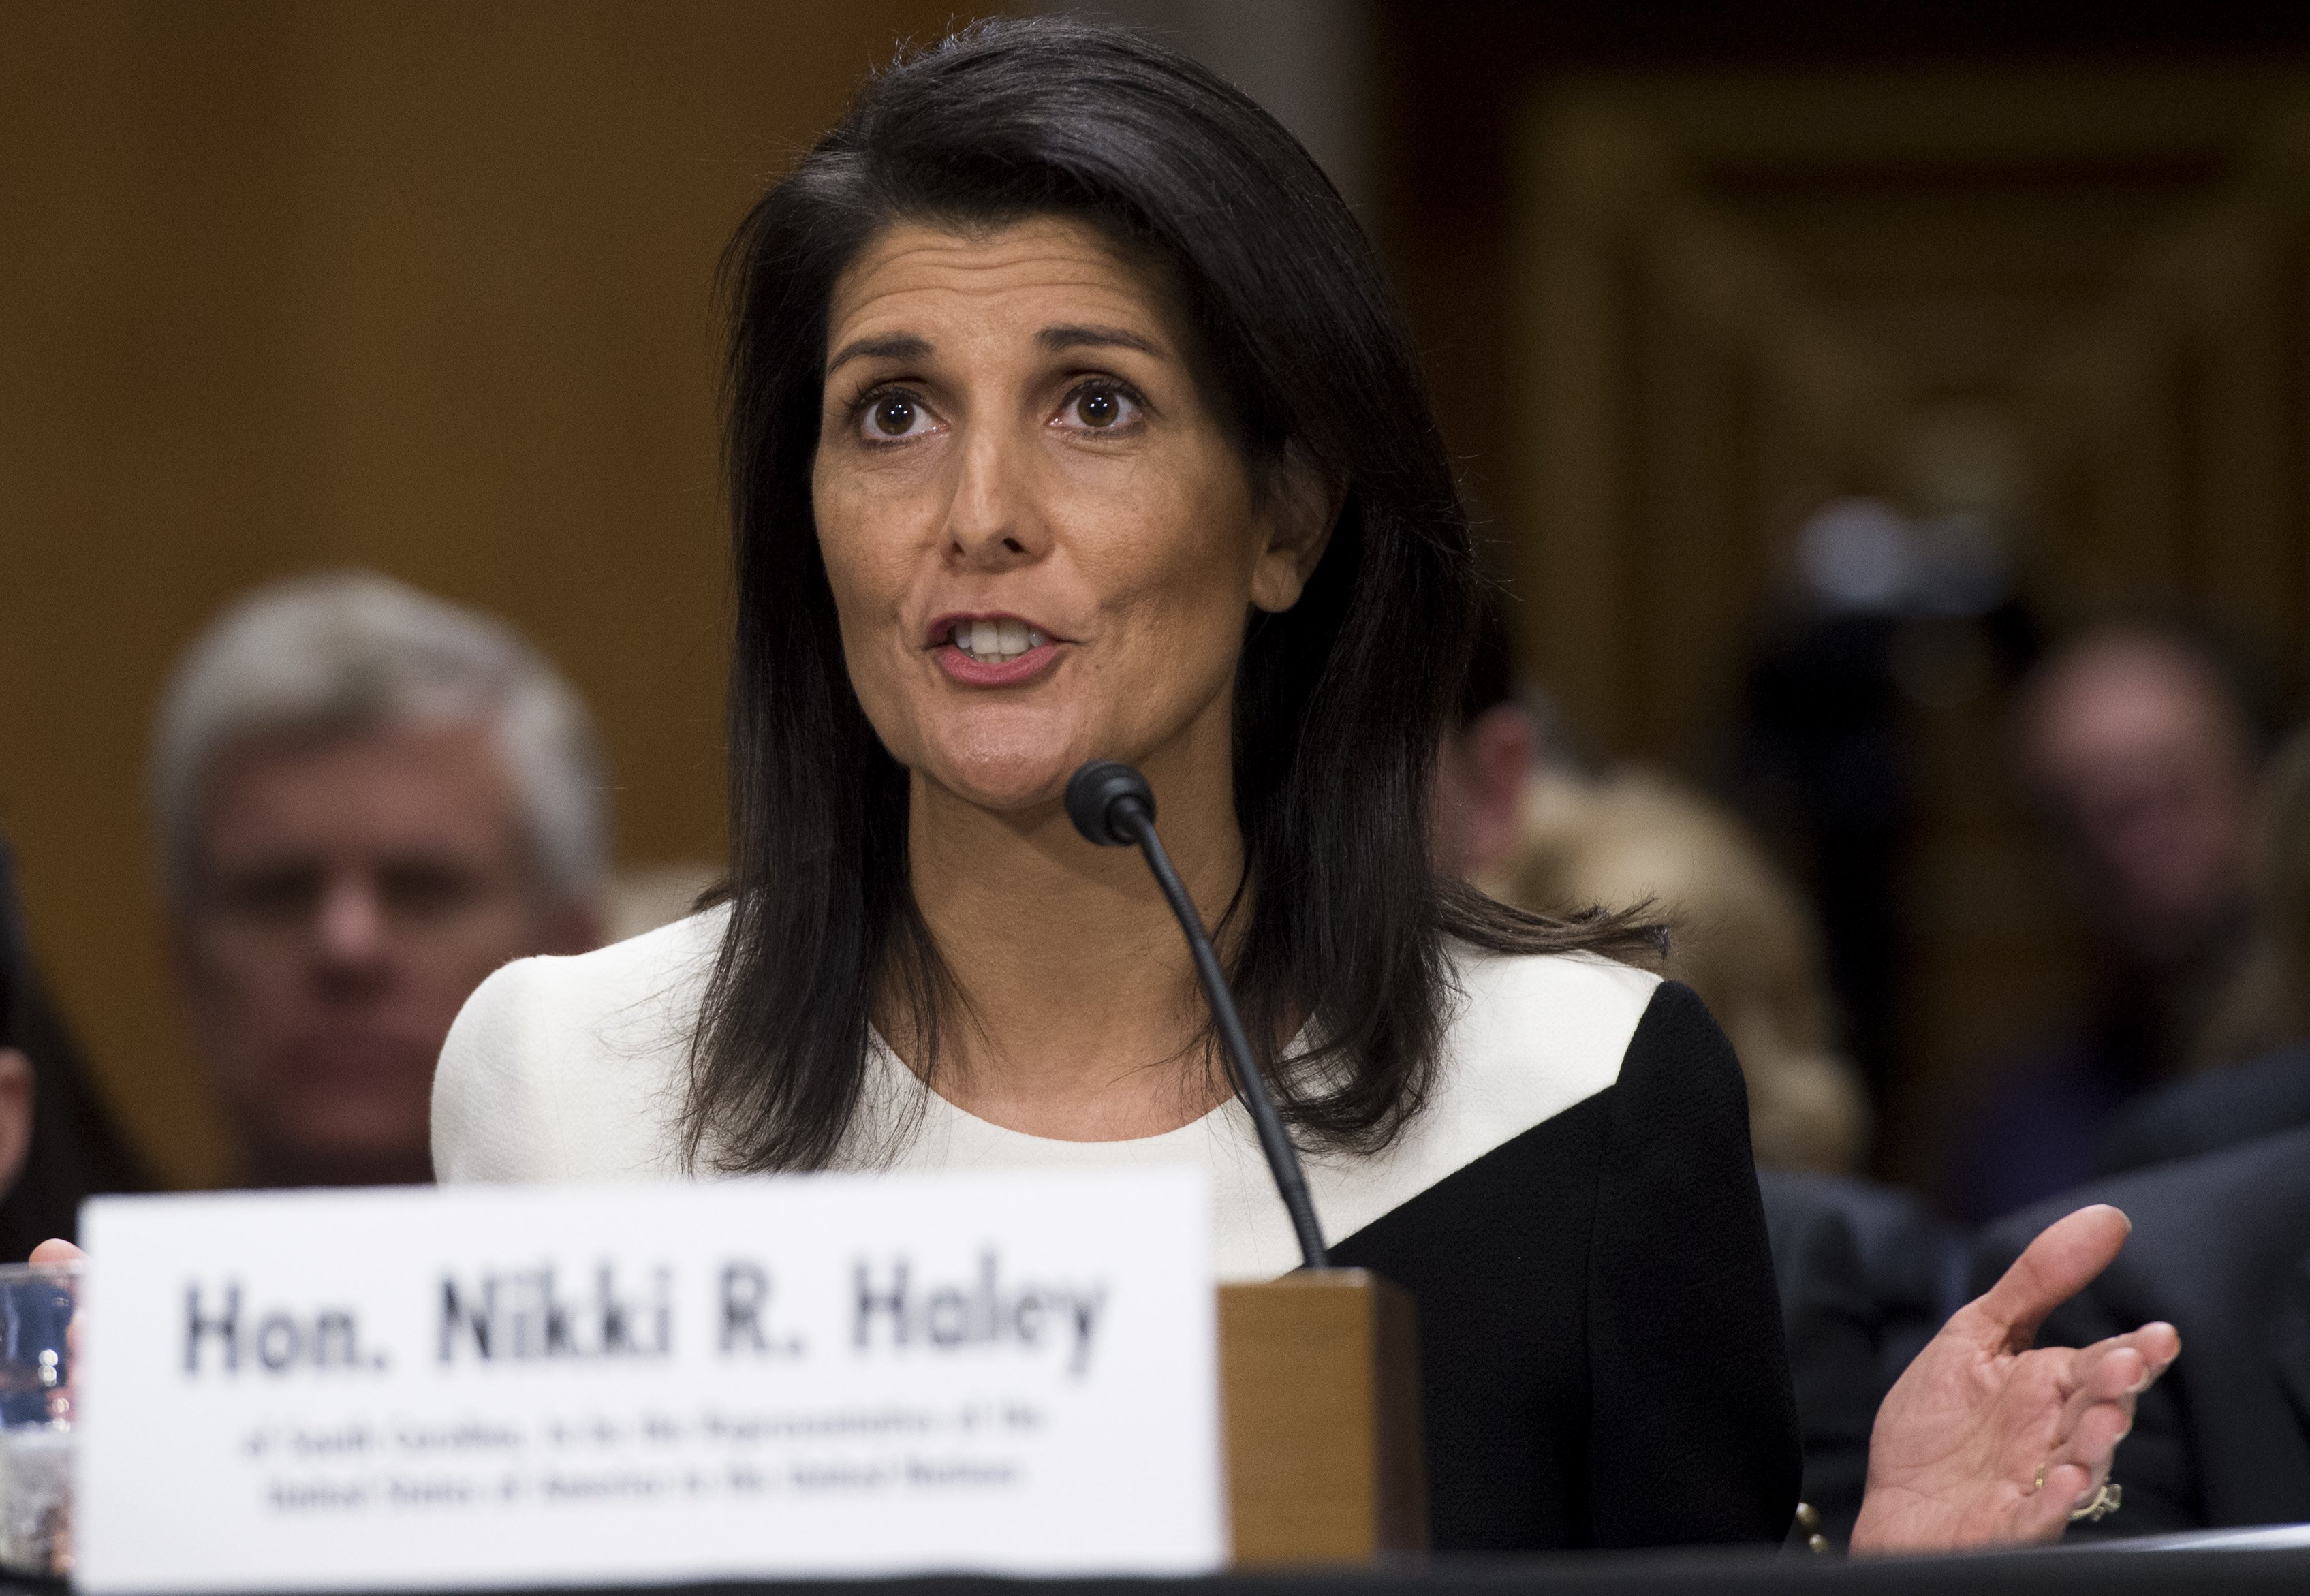 Nikki Haley at confirmation hearing